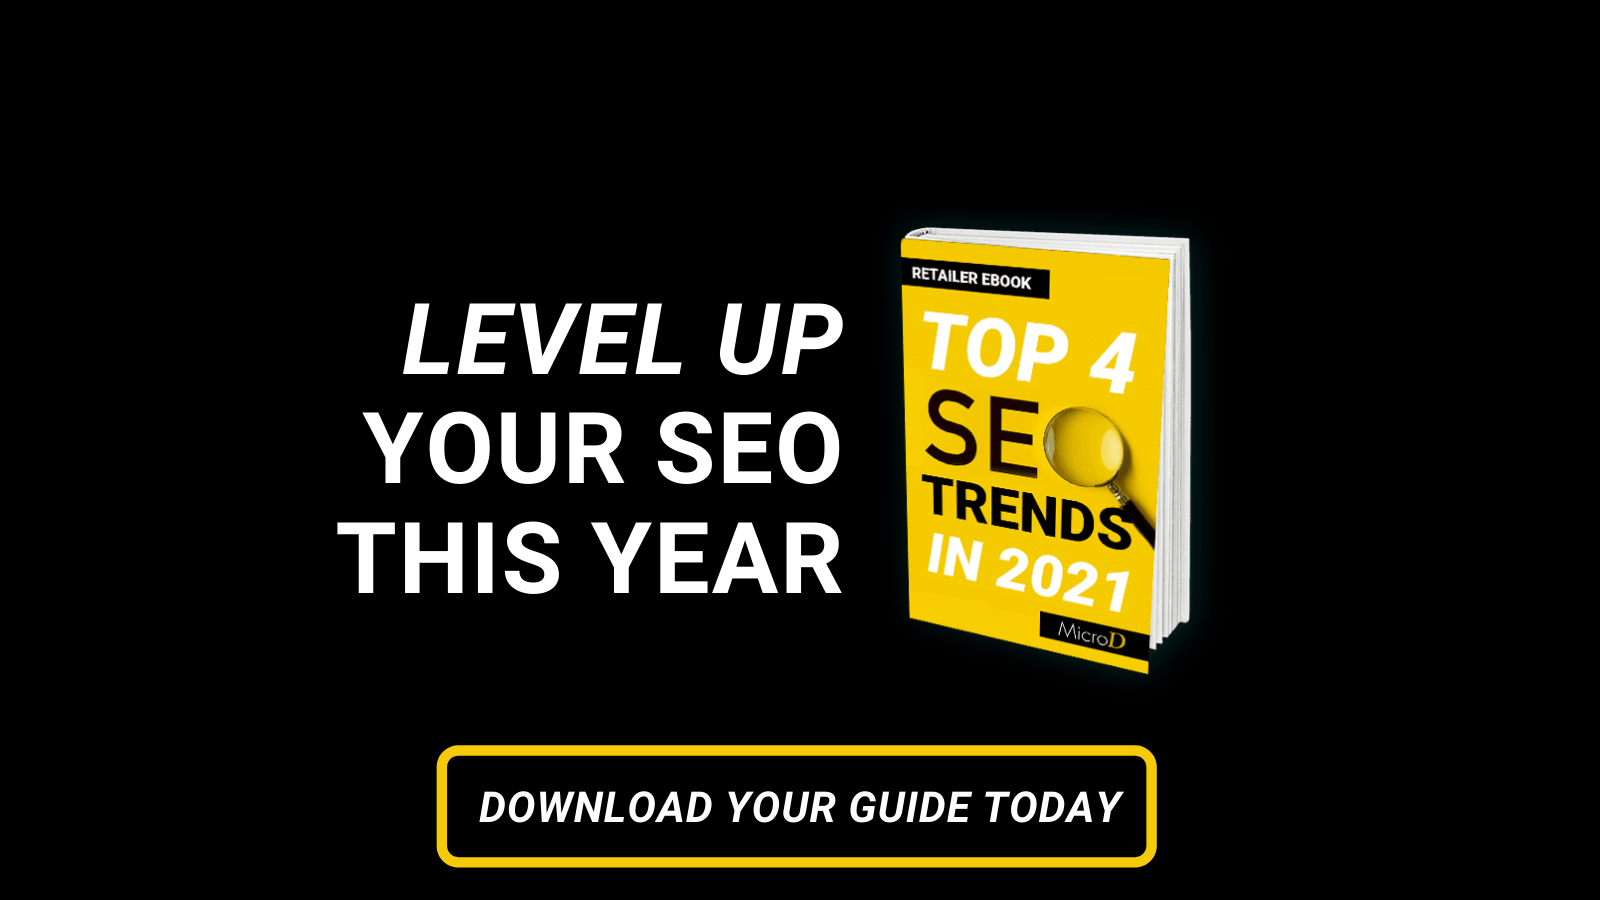 ebook seo trends in 2021 for retailers